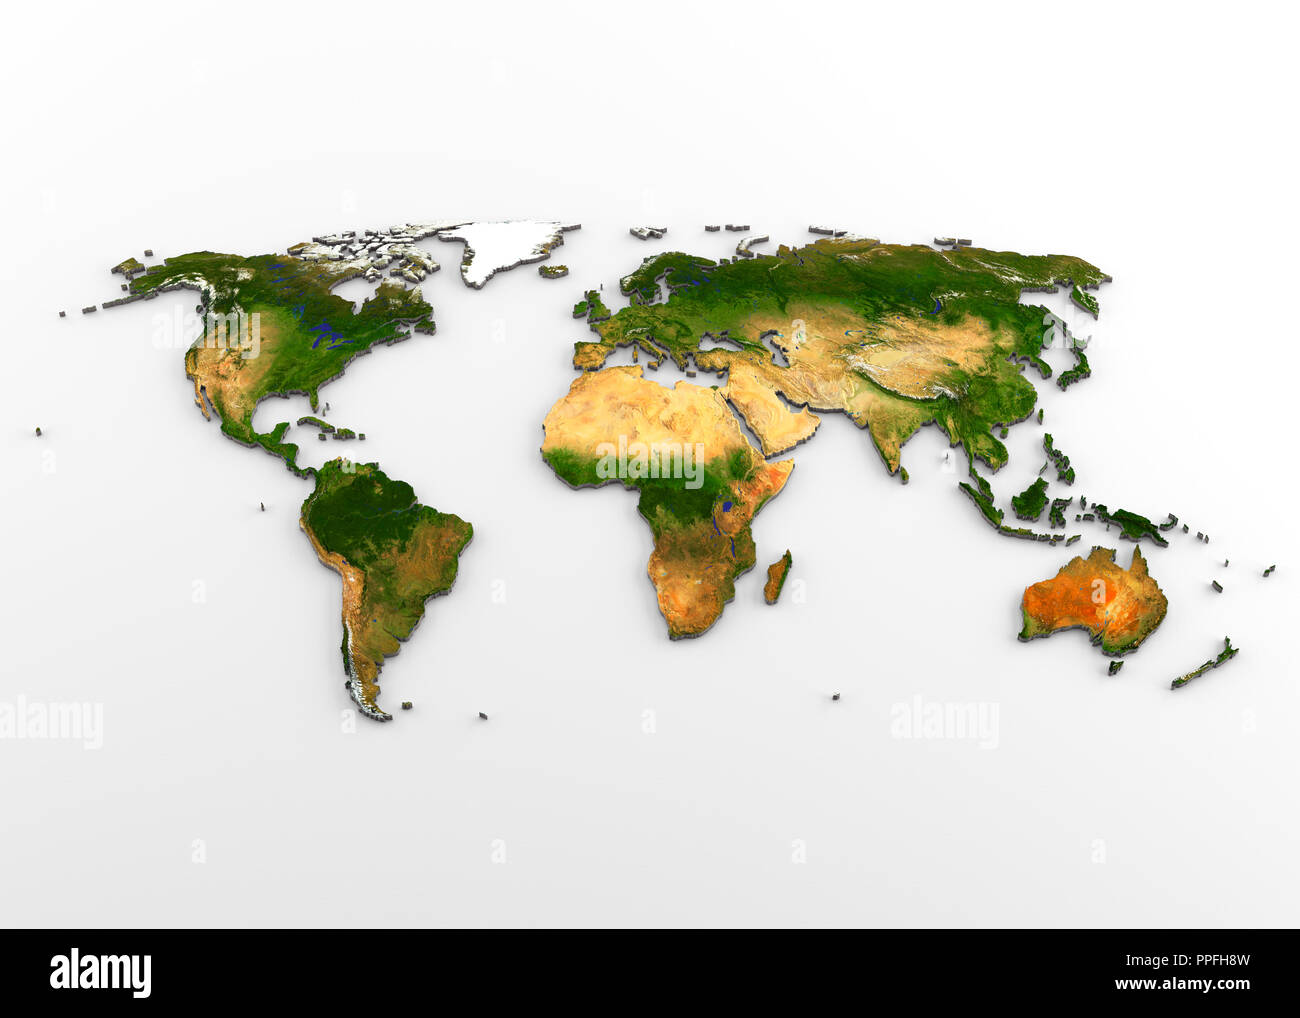 3D rendering of extruded high-resolution physical map (with relief) of the World, isolated on white background. - Stock Image